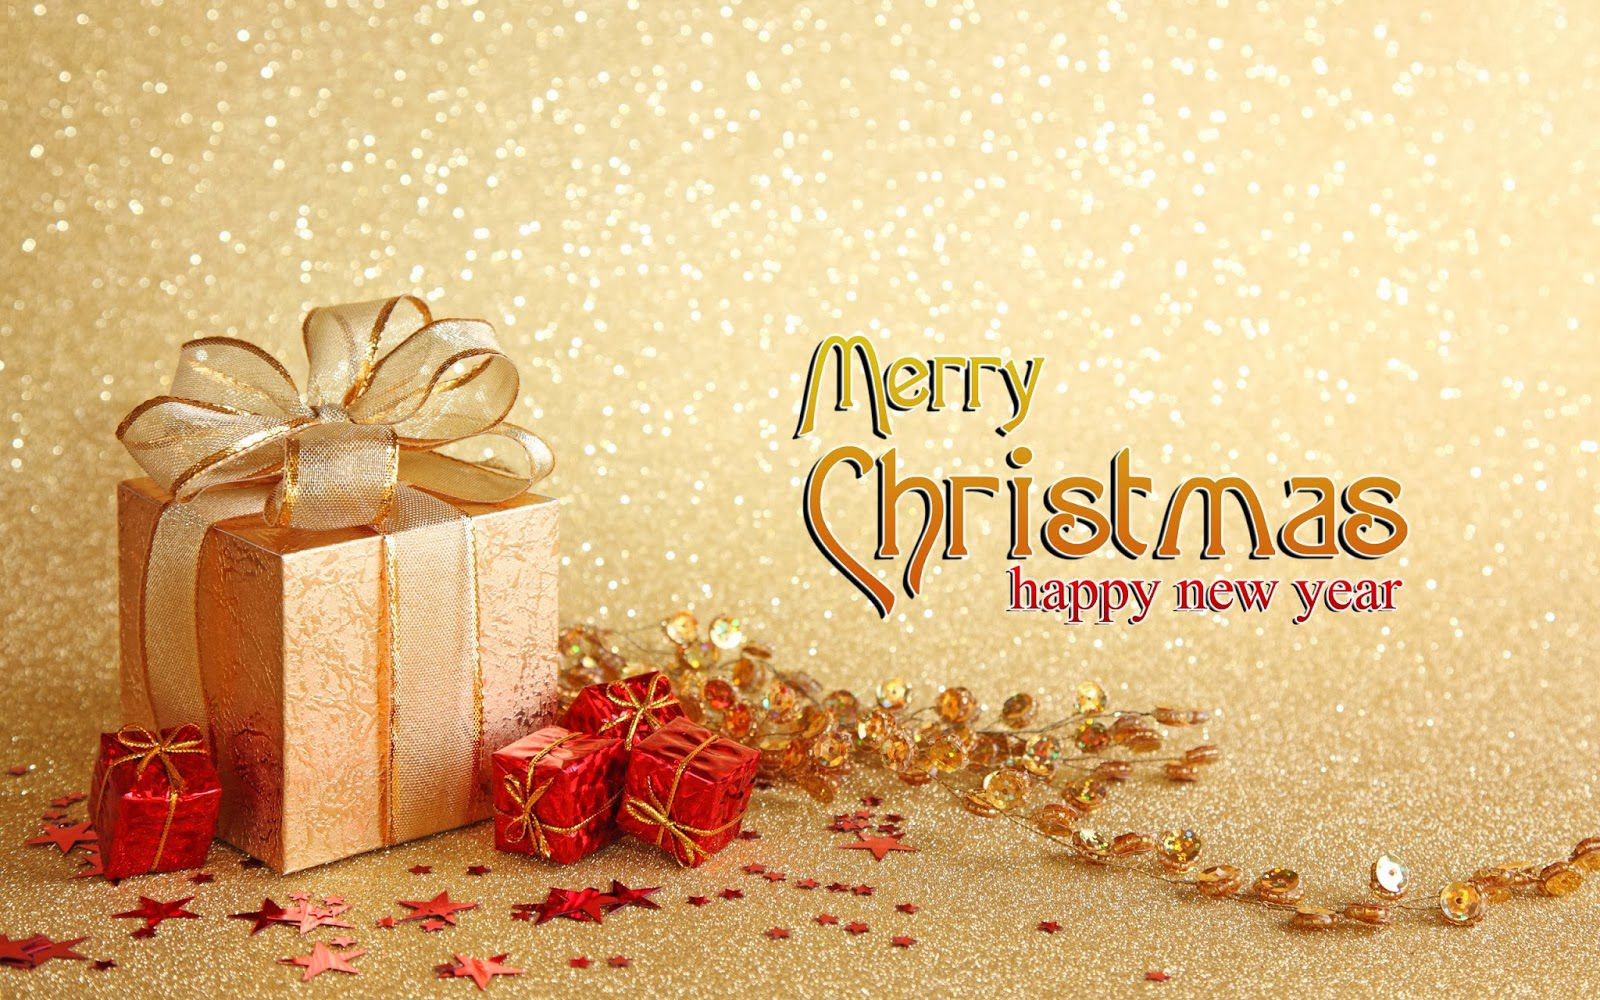 top 100 merry christmas wishes quotes messages christmas is here and its the perfect time of the year to holiday and celebrate with friends and family